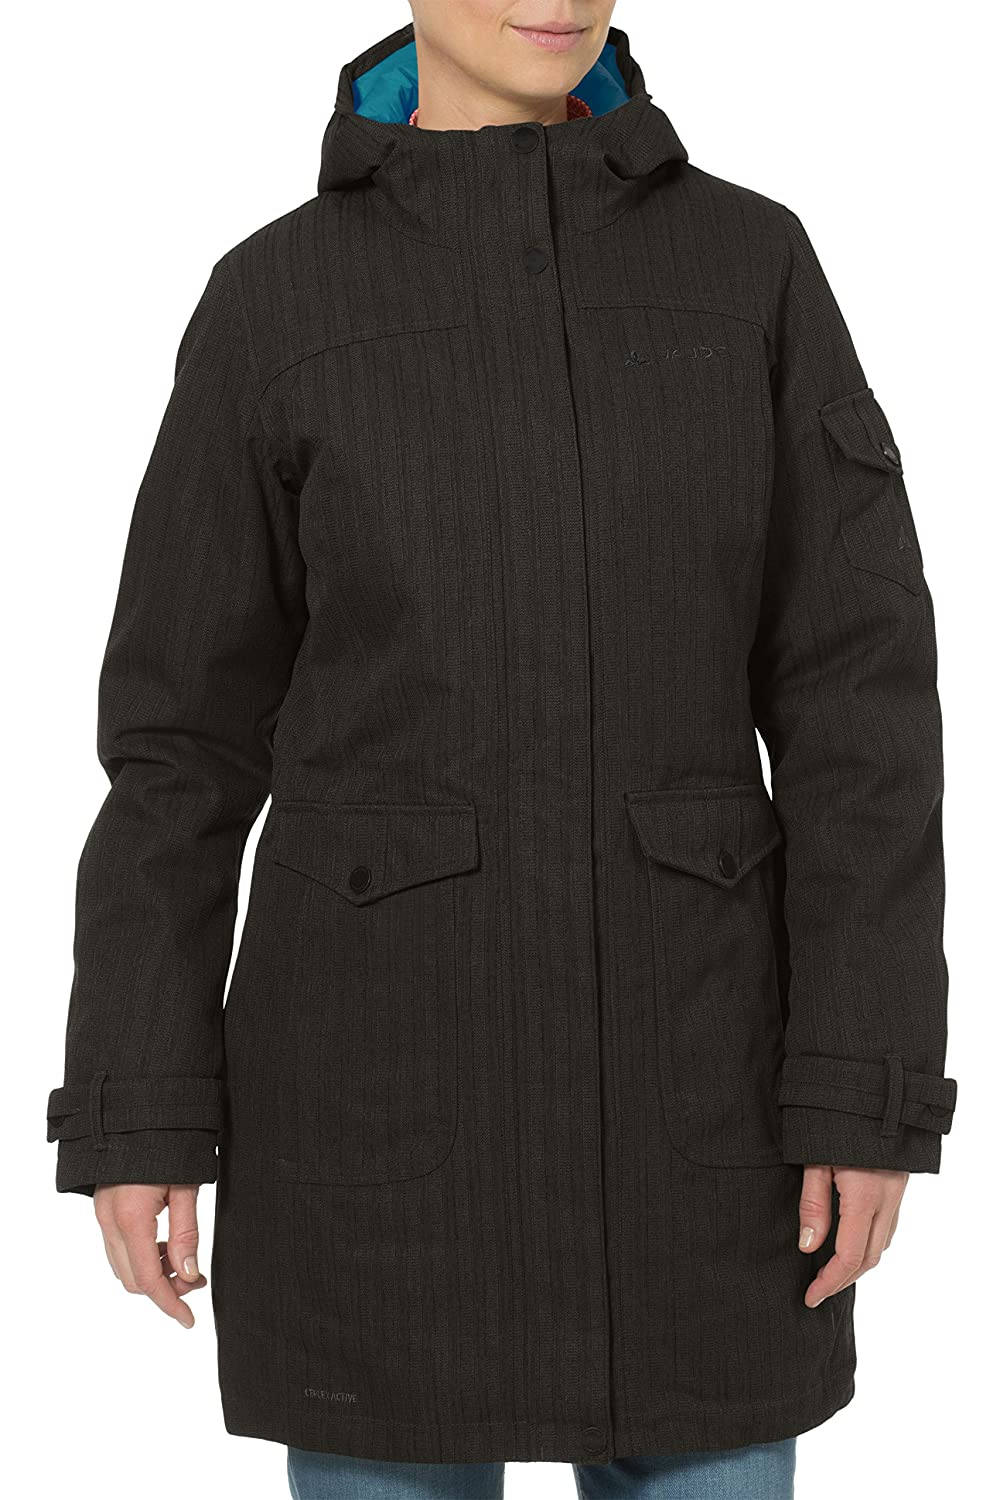 VAUDE Damen Mantel damen Yale Coat VI